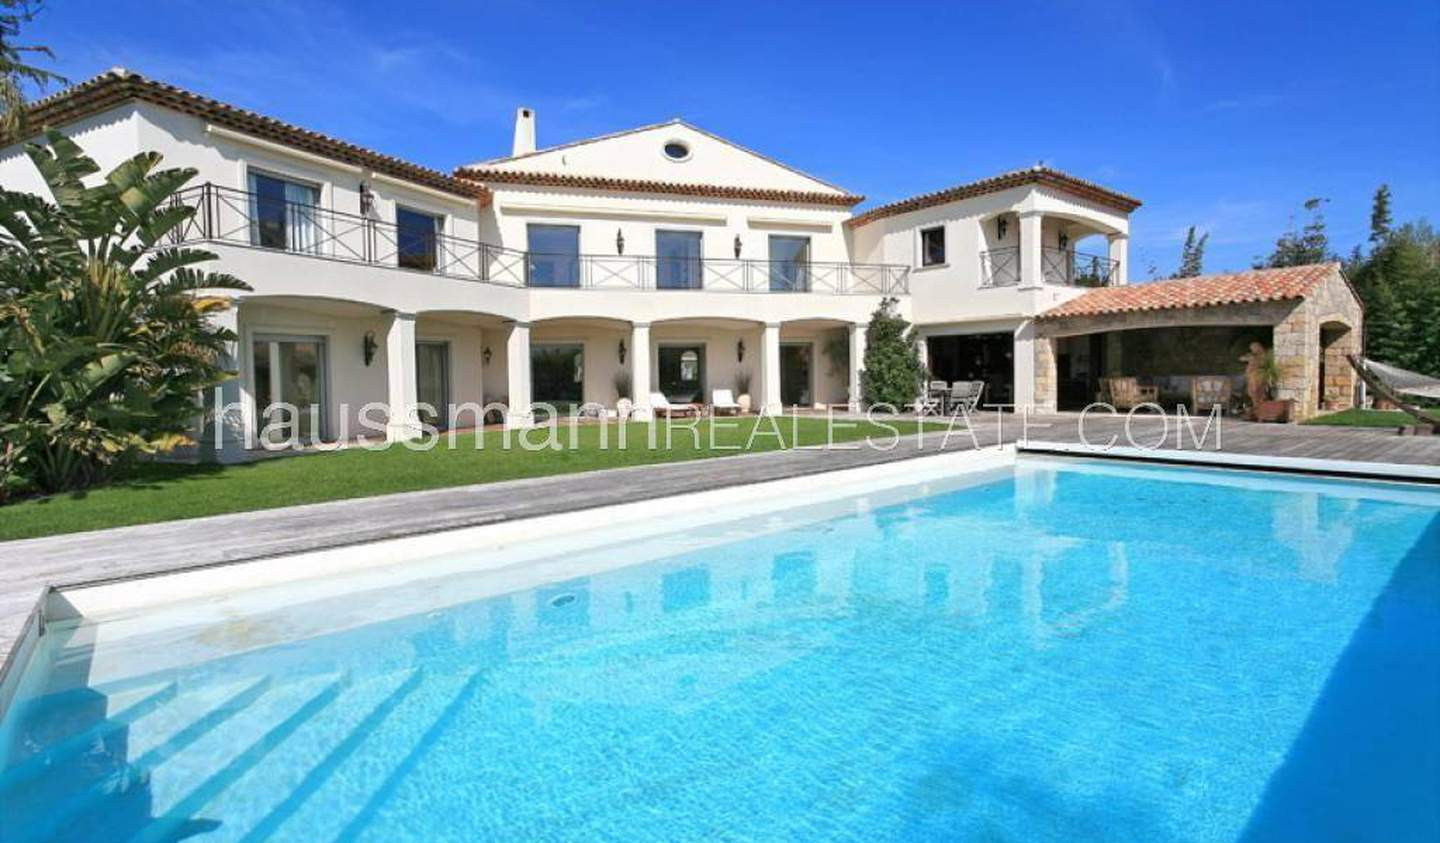 House with pool and terrace Antibes